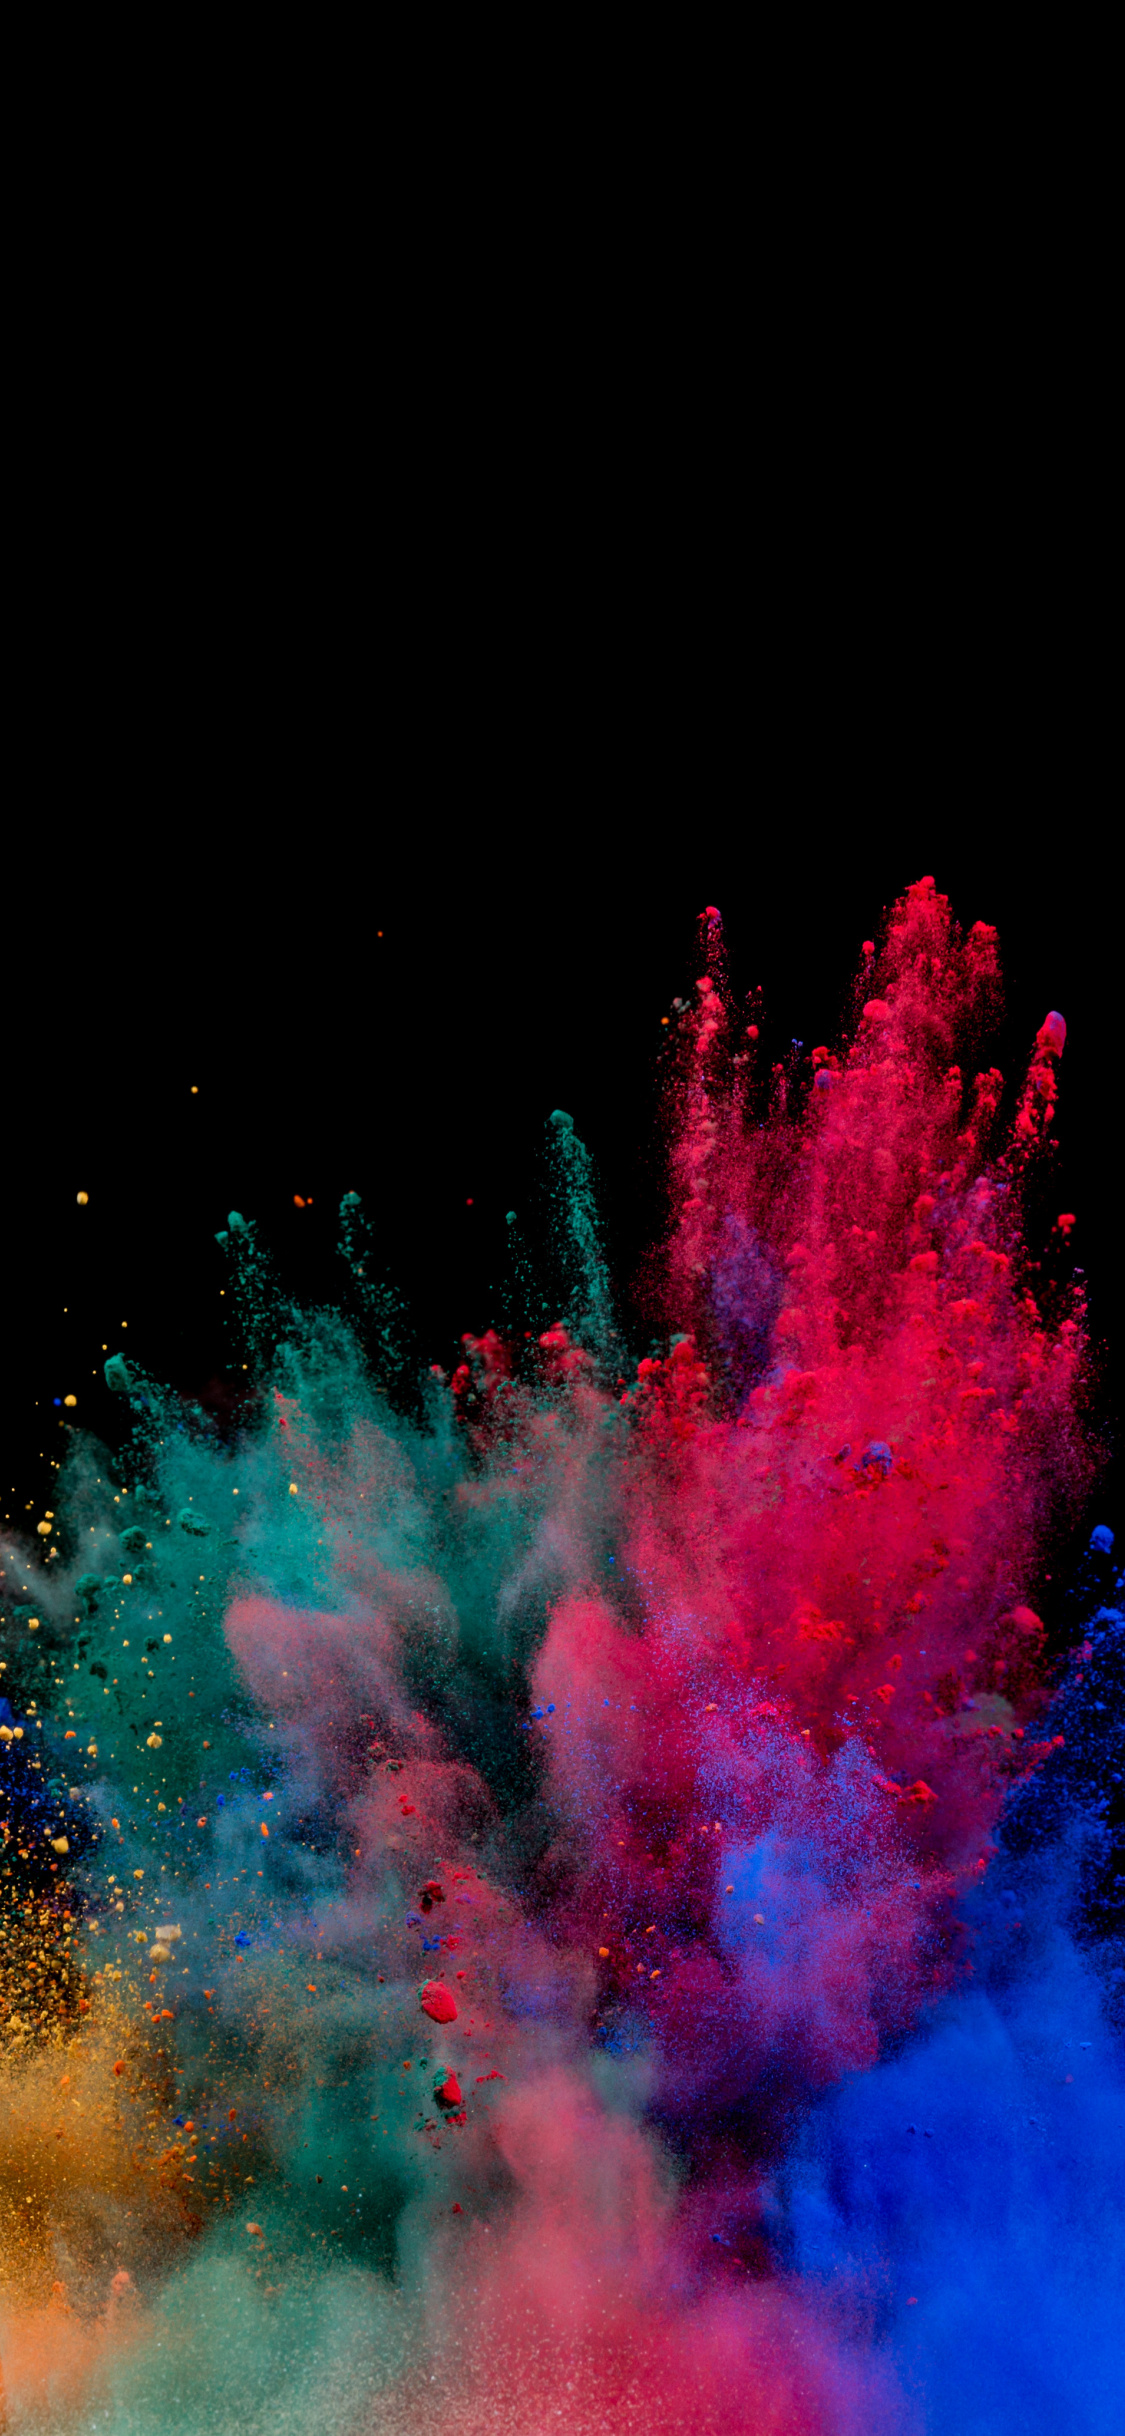 Colors, Blast, Explosion, Colorful, Wallpaper - Colorful Iphone - HD Wallpaper